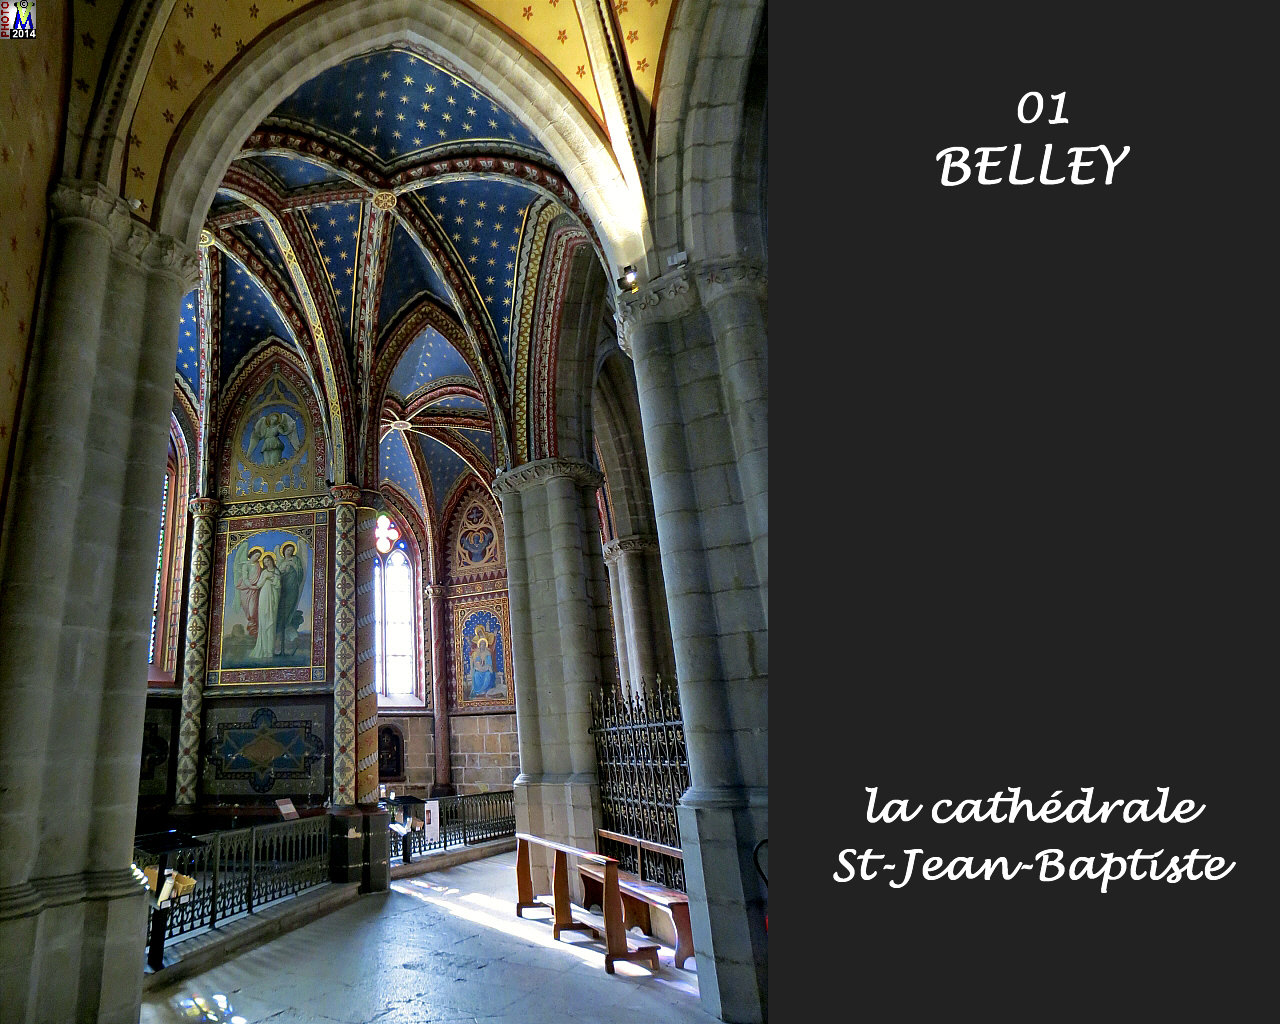 01BELLEY_cathedrale_206.jpg